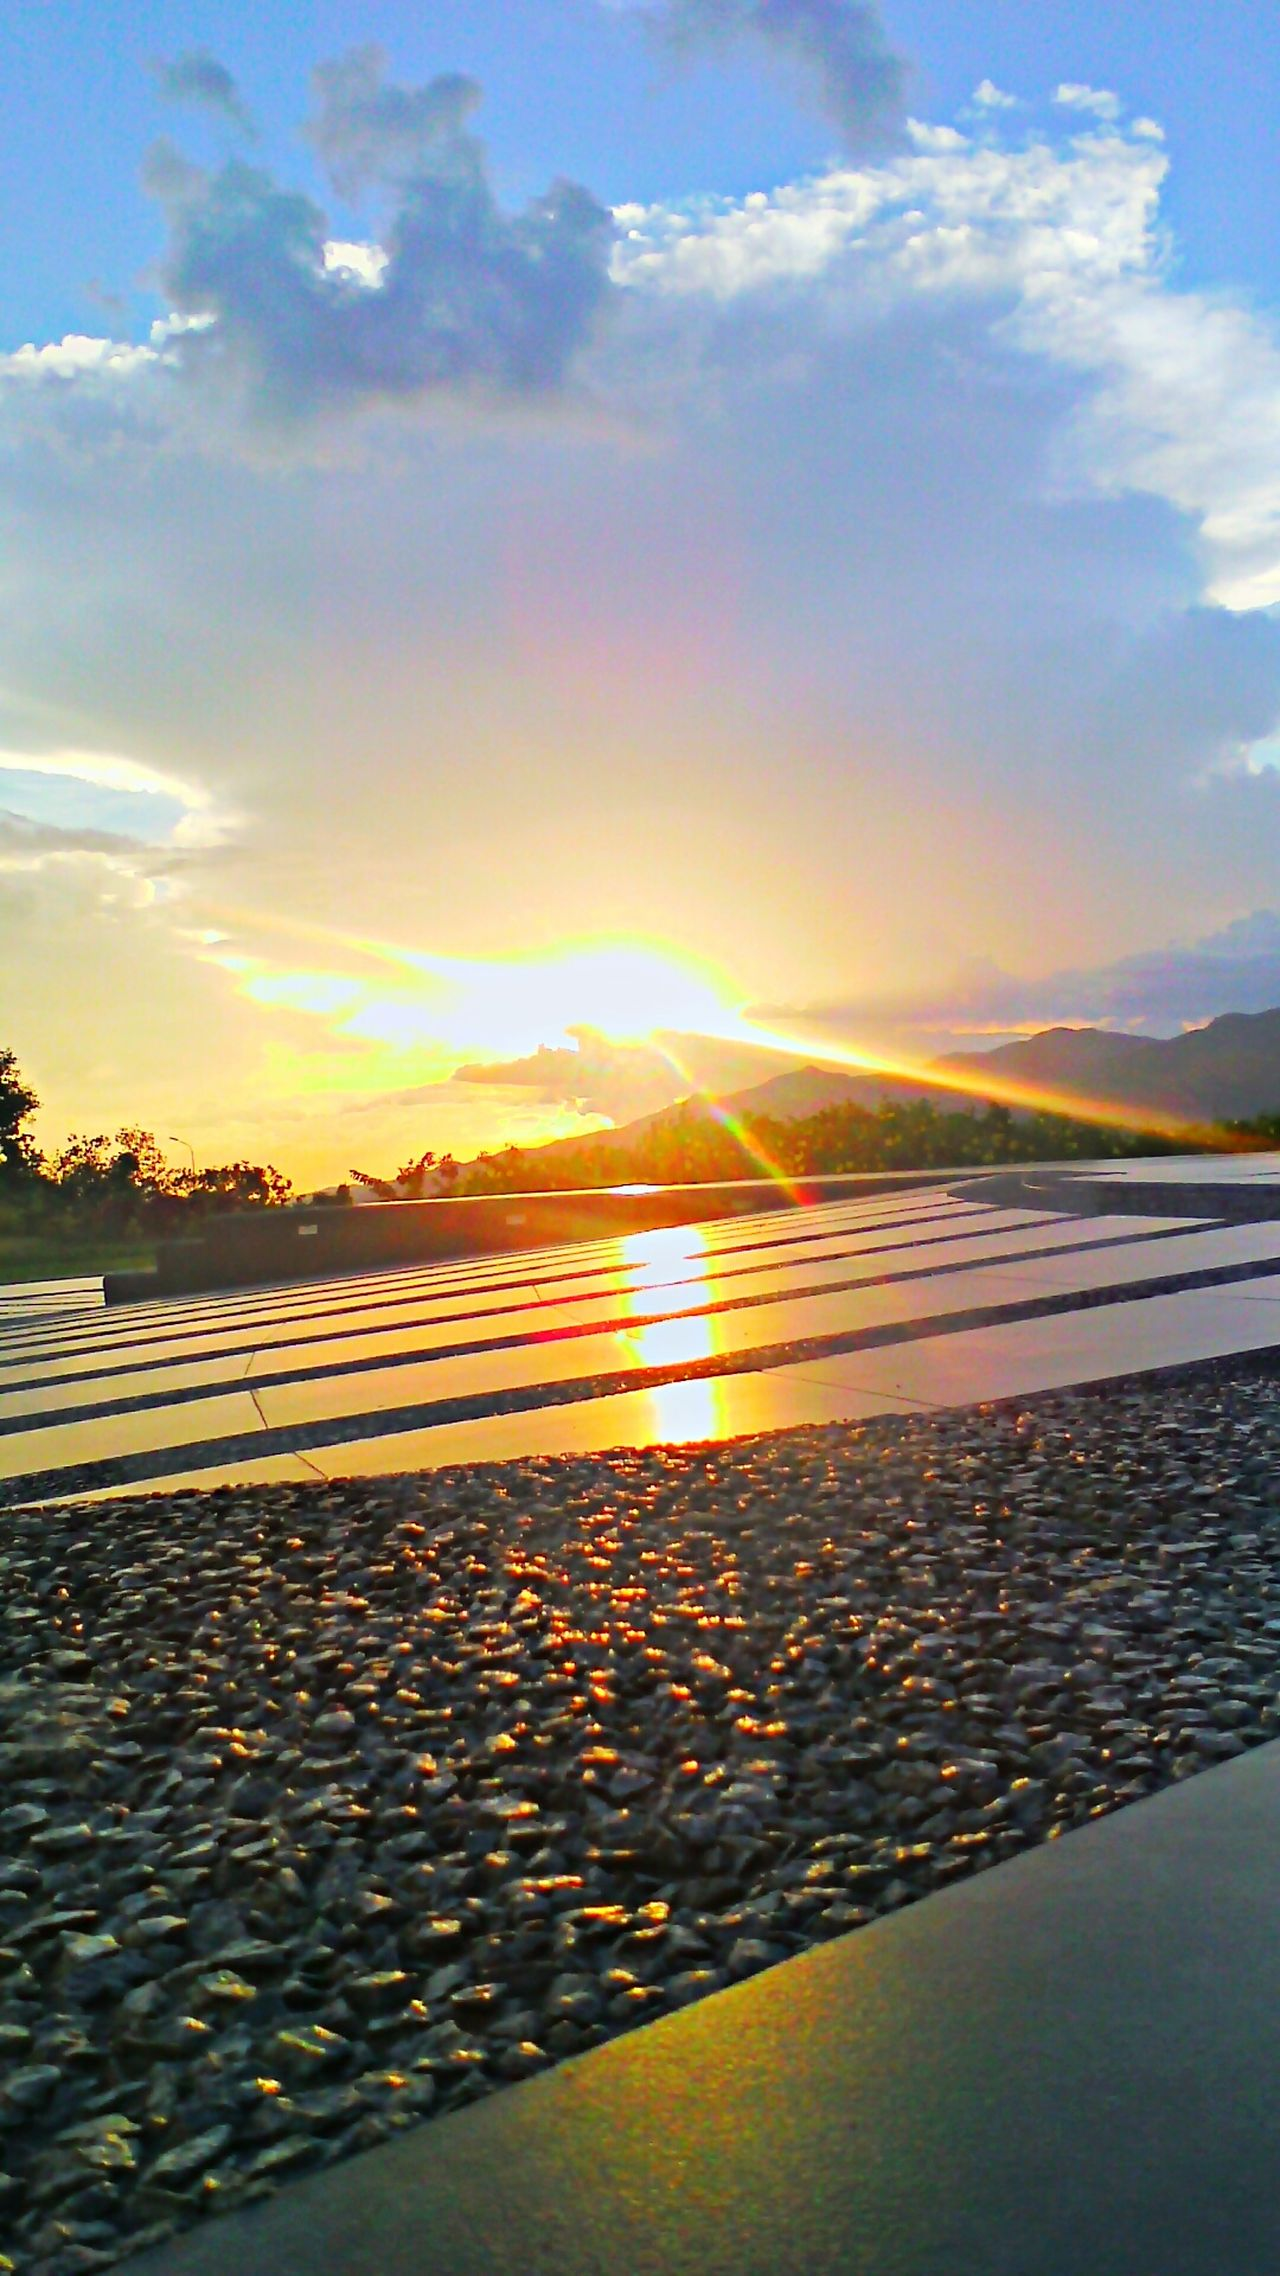 Tranquil Scene Beauty In Nature Tourism Travel Destinations Majestic Photographic Memory Lifestyle Photography Popular Colorful EyeEm EyeEmBestPics Venezuela Photo Of The Day Tranquility Scenics Vacations Nature Like4like Monuments Of The World Atardeceresporelmundo Spirituality Special Day Sunset Creative Photo Architecture_collection